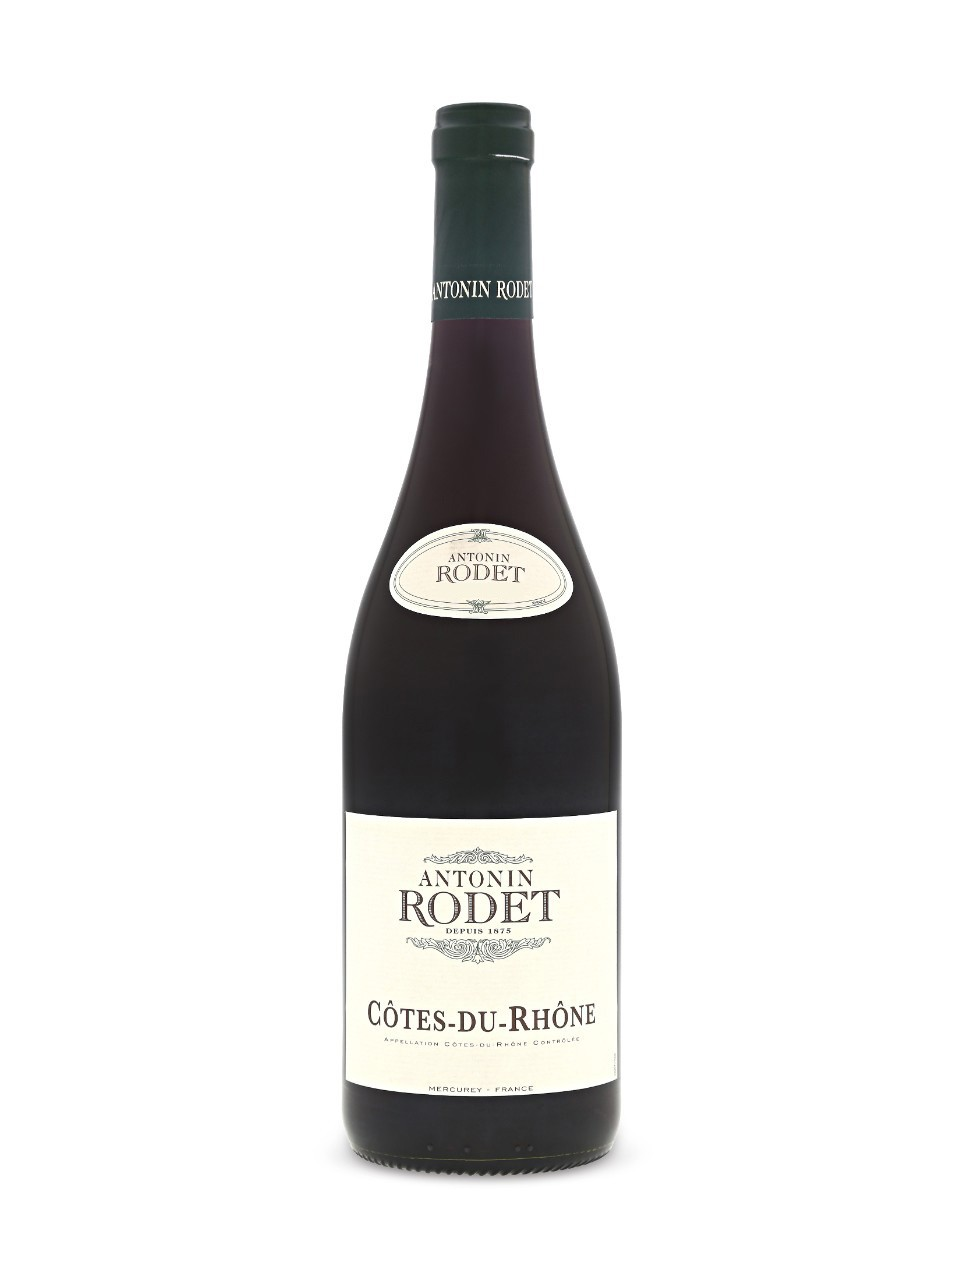 Rodet CdRhone AOC from LCBO